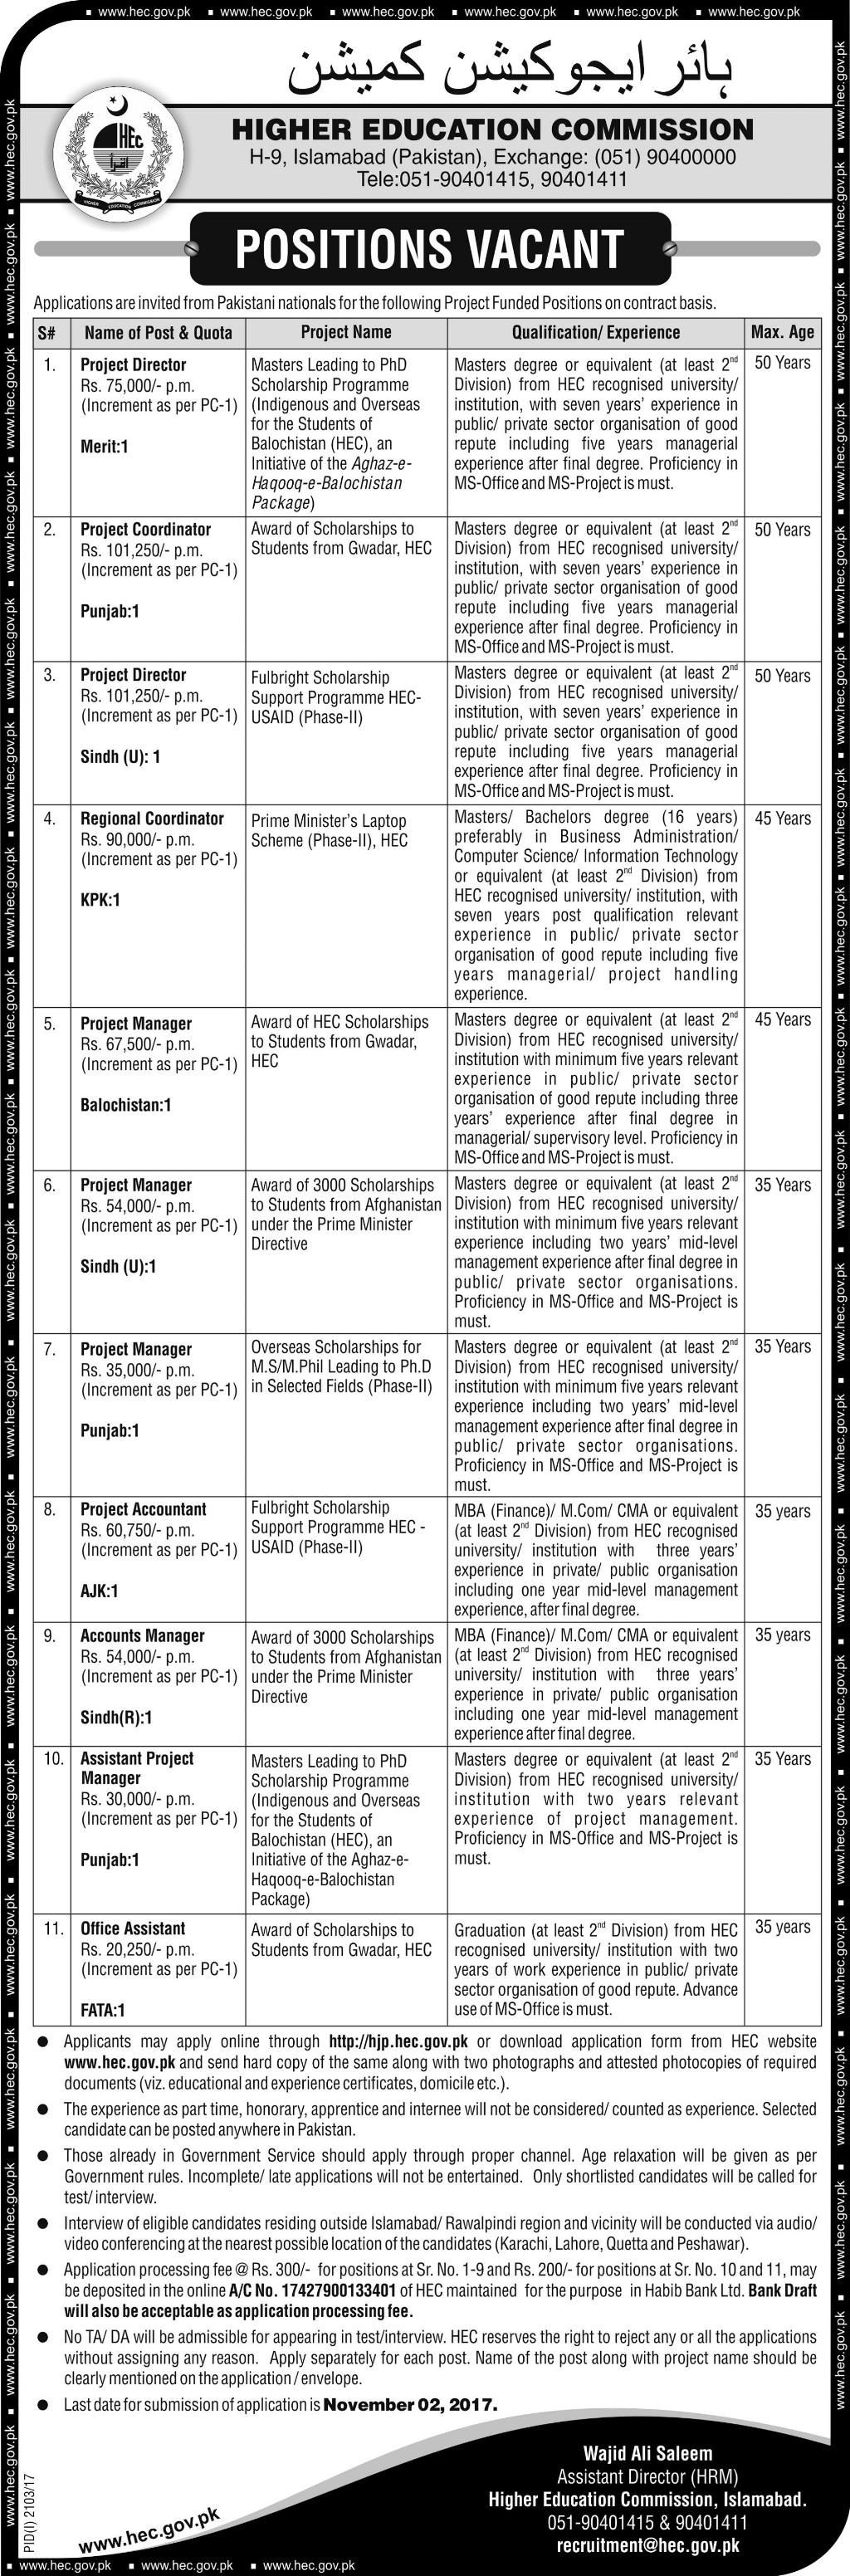 Higher Education Commission Pakistan Jobs HEC Jobs 2017